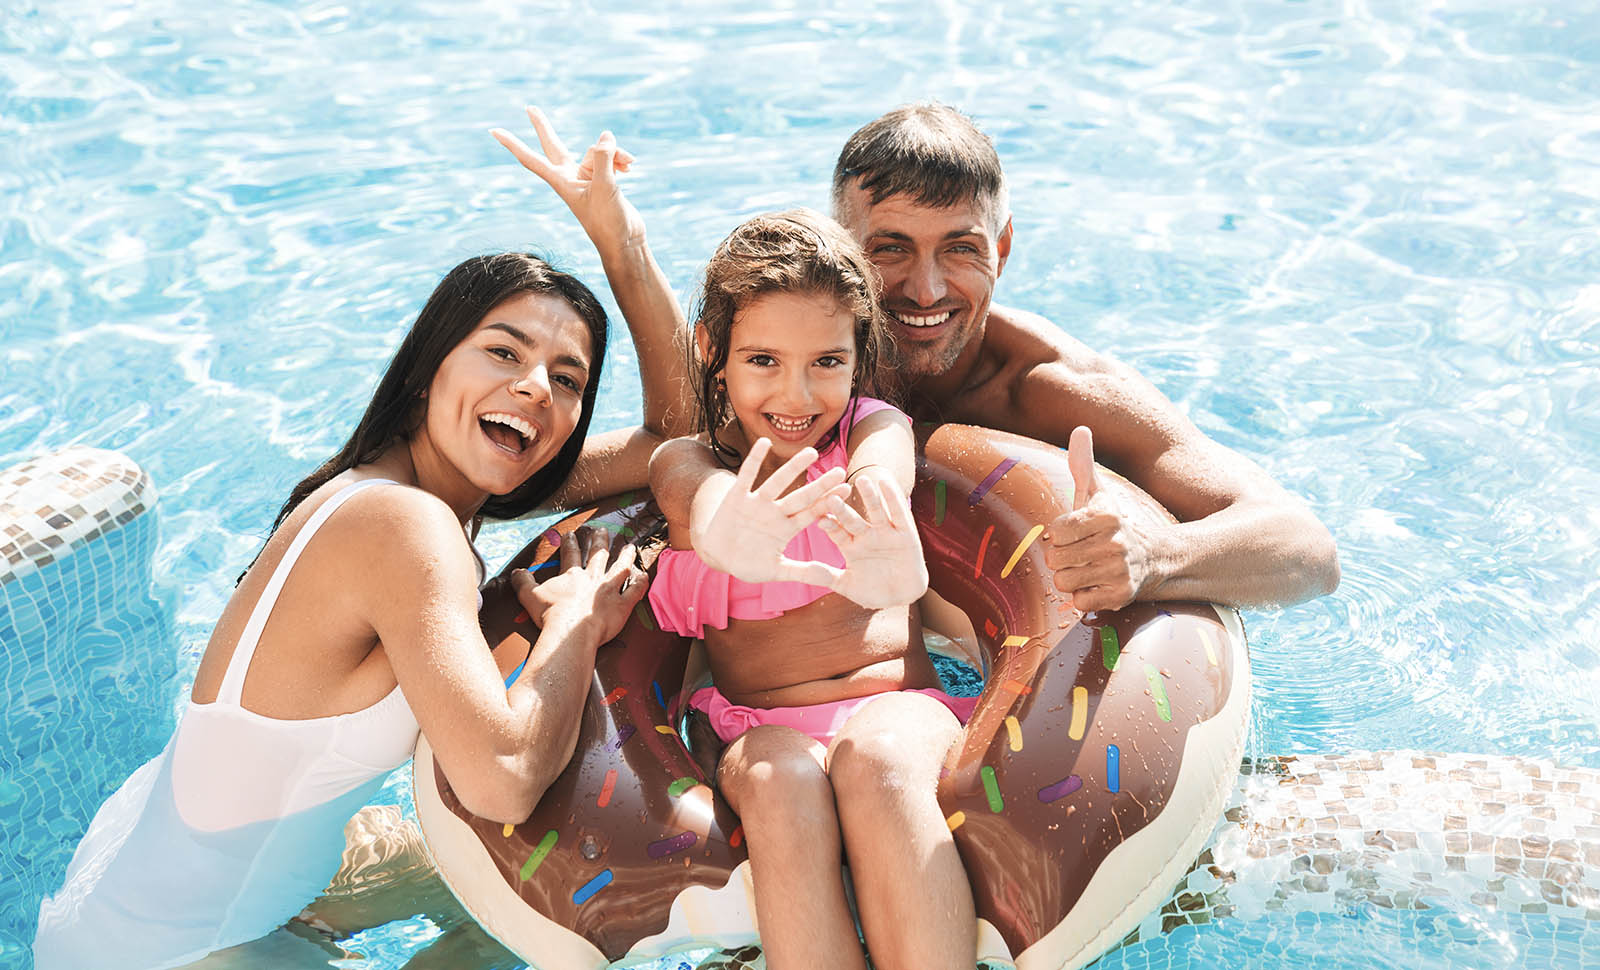 family laughing and taking a photo together in a pool